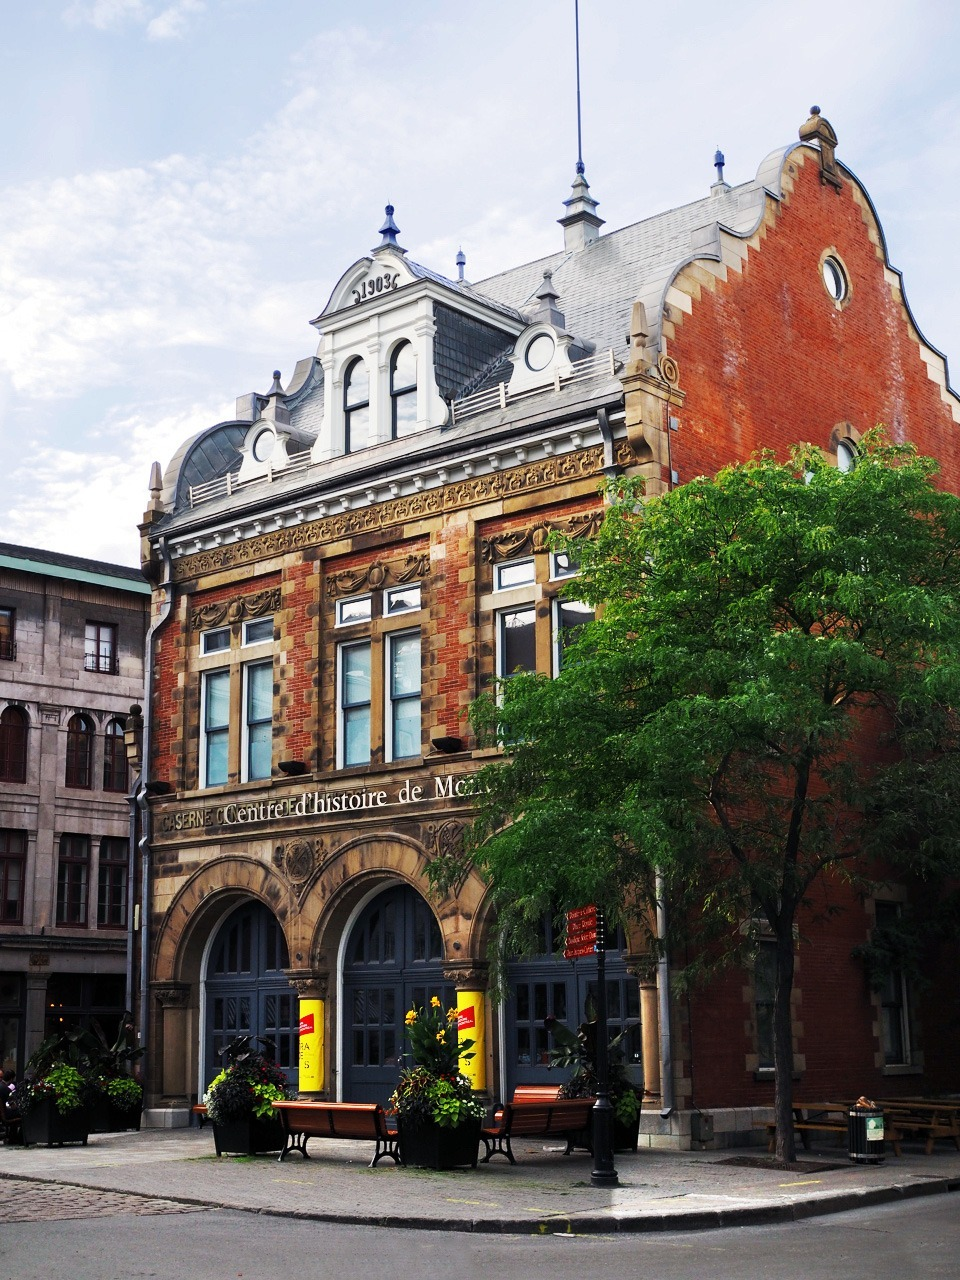 Musée d'histoire de Montréal - Things to Do in Old Montreal